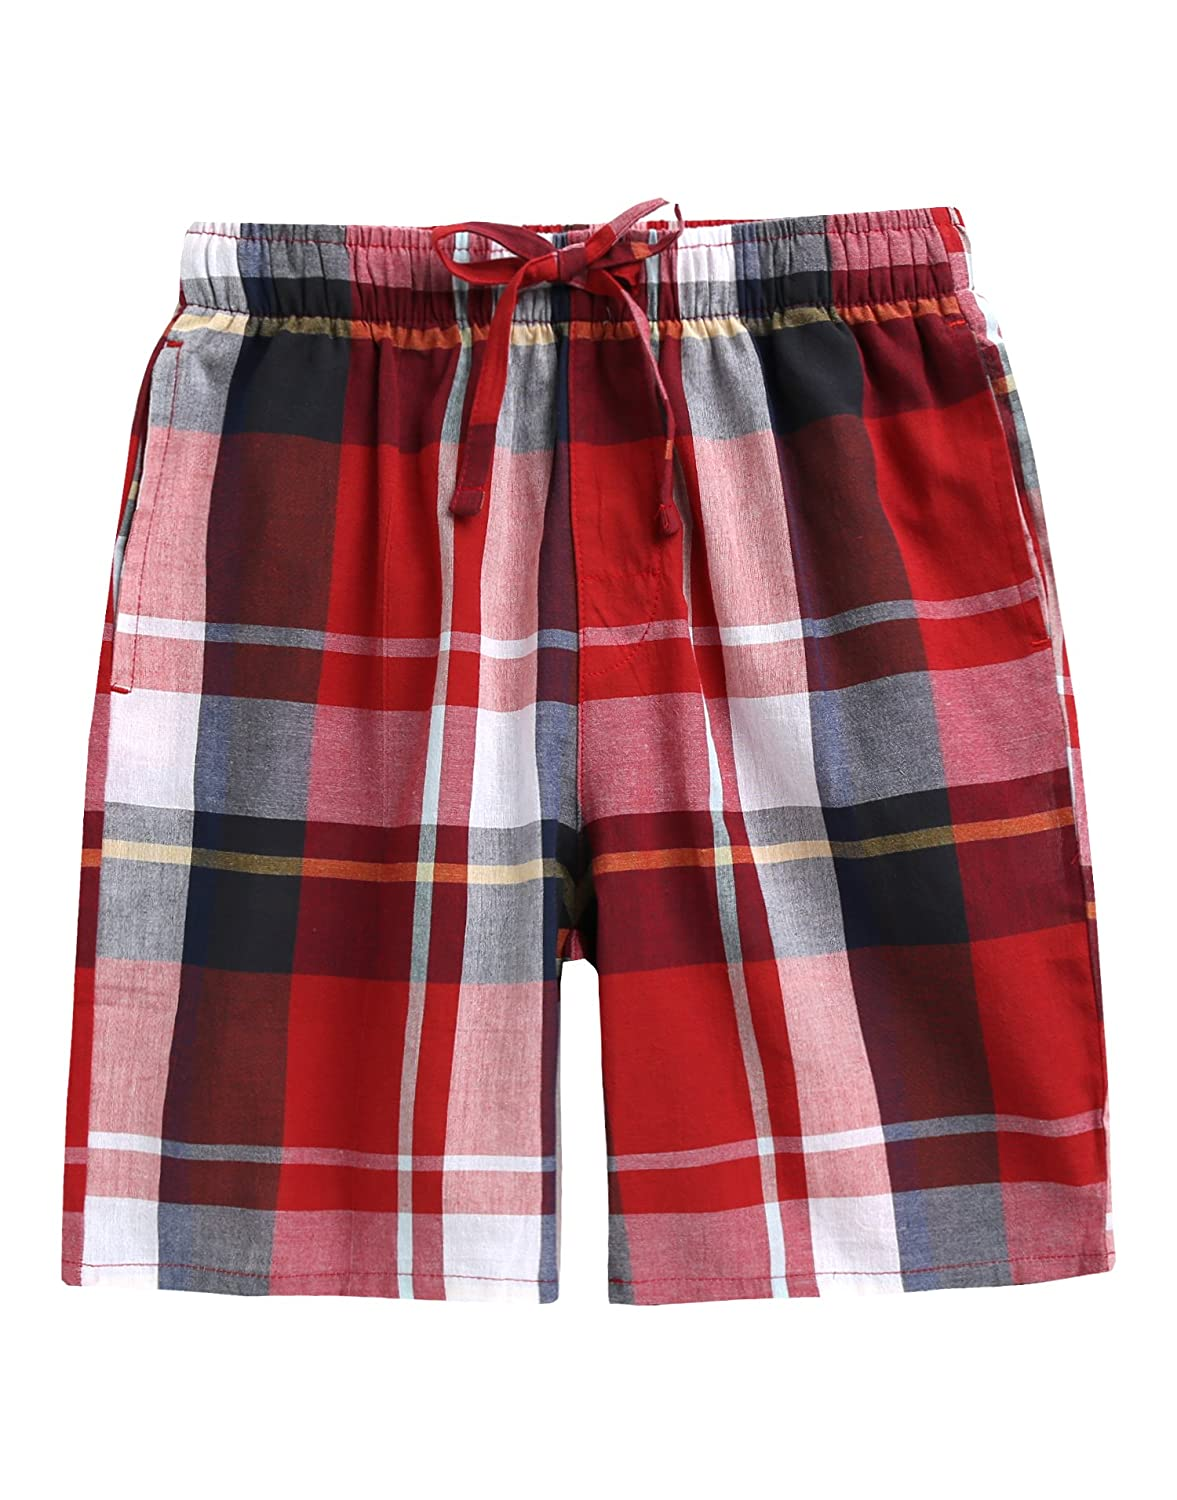 Vaenait baby TINFL 6-14 Years Big Boys PJ Plaid Check Soft Lightweight 100% Cotton Lounge Shorts with Pocket TINFL-BSPs